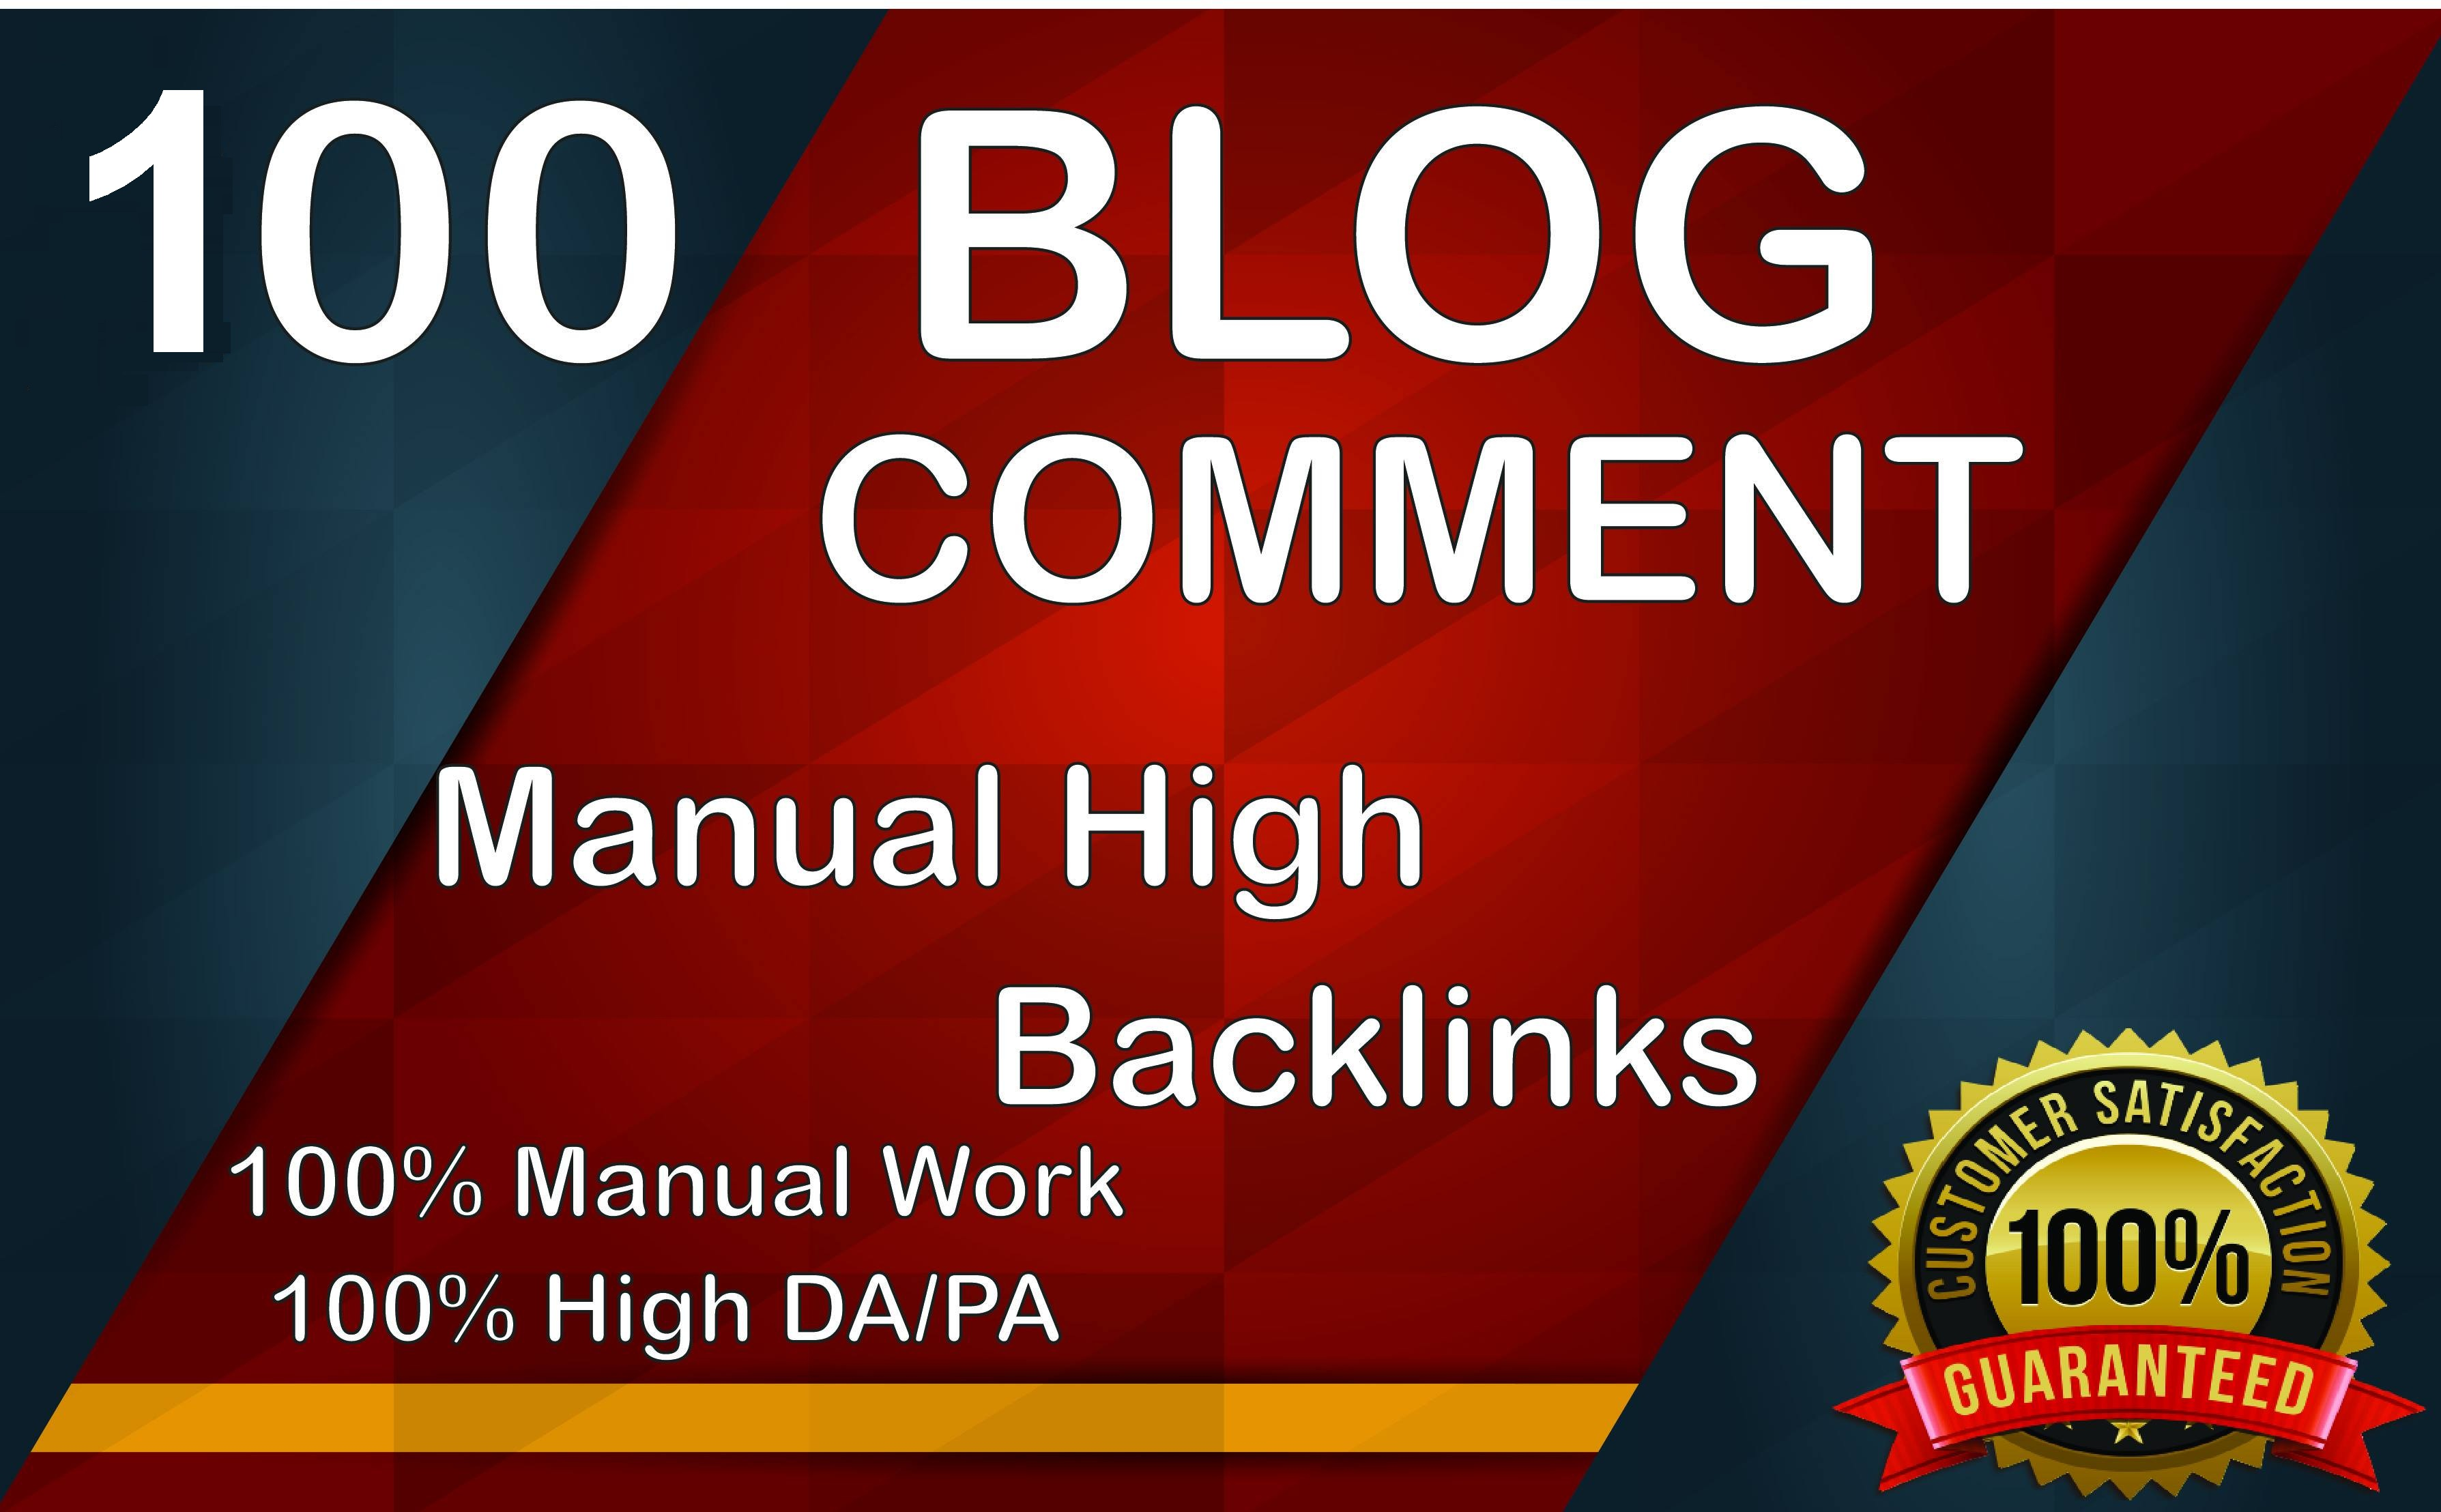 Provide you 100 Blog Comments Backlinks from high quality Blogs